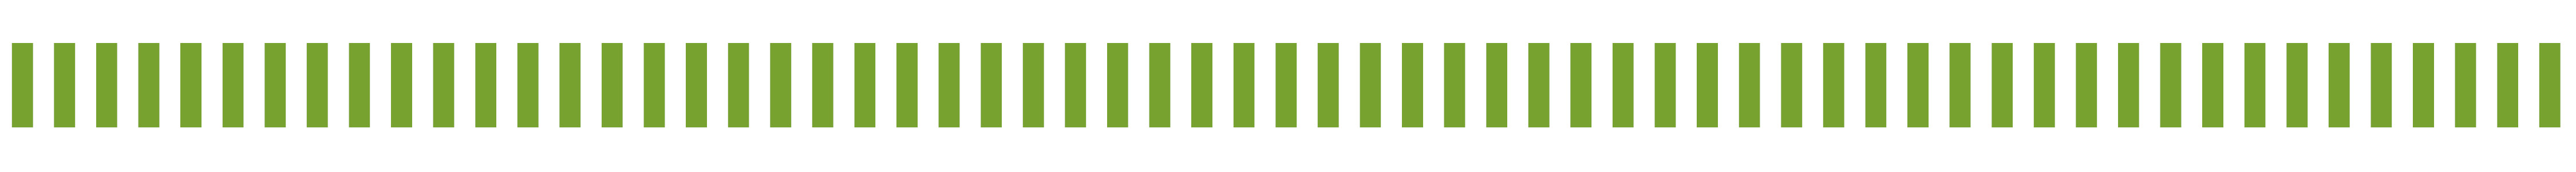 green bars - larger - dark green.jpg